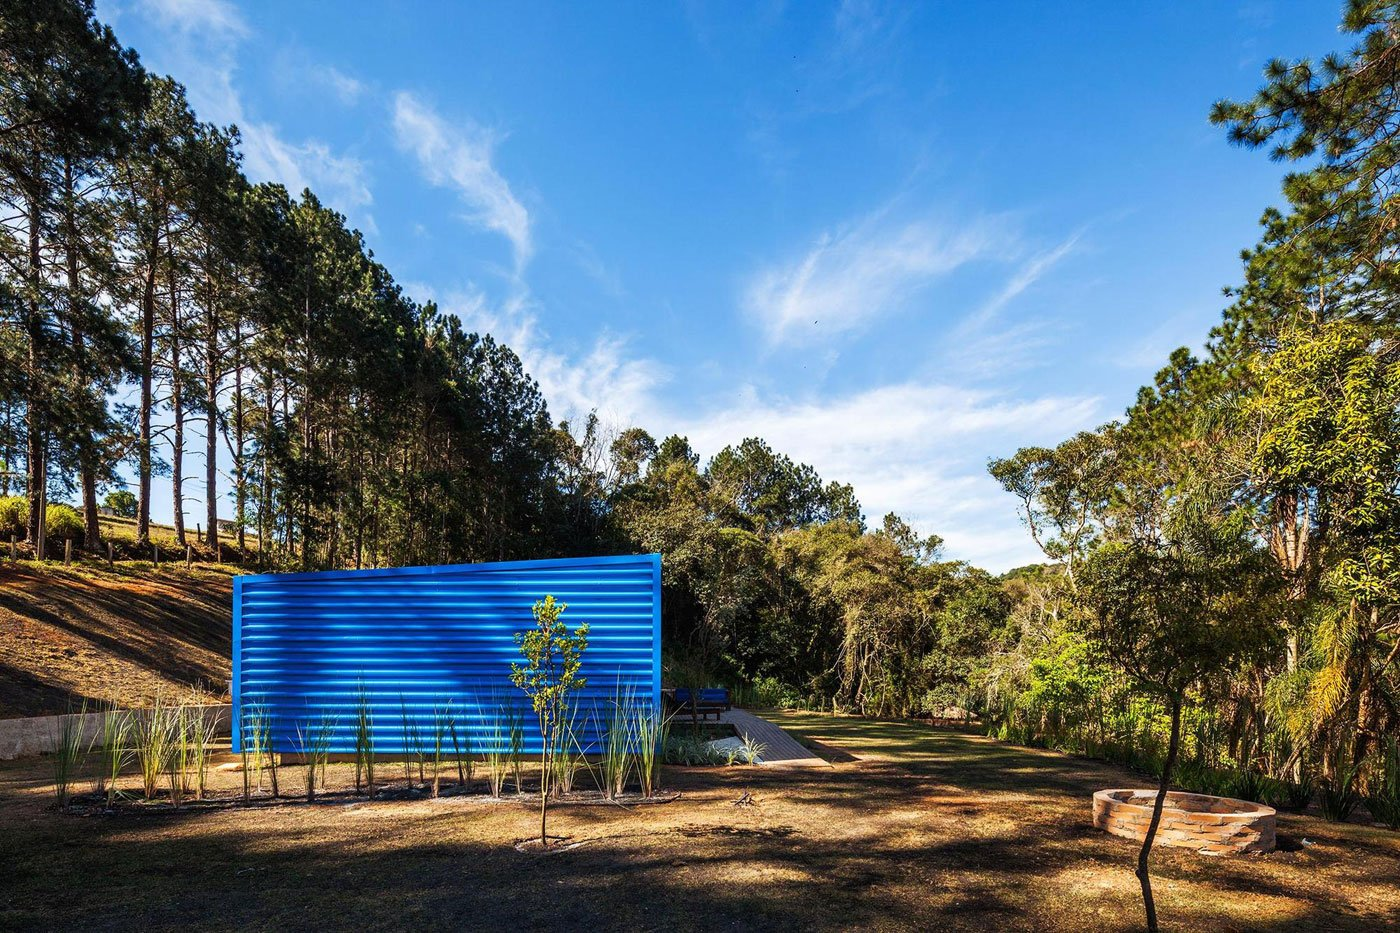 Tiny Summer Home Clad in Blue